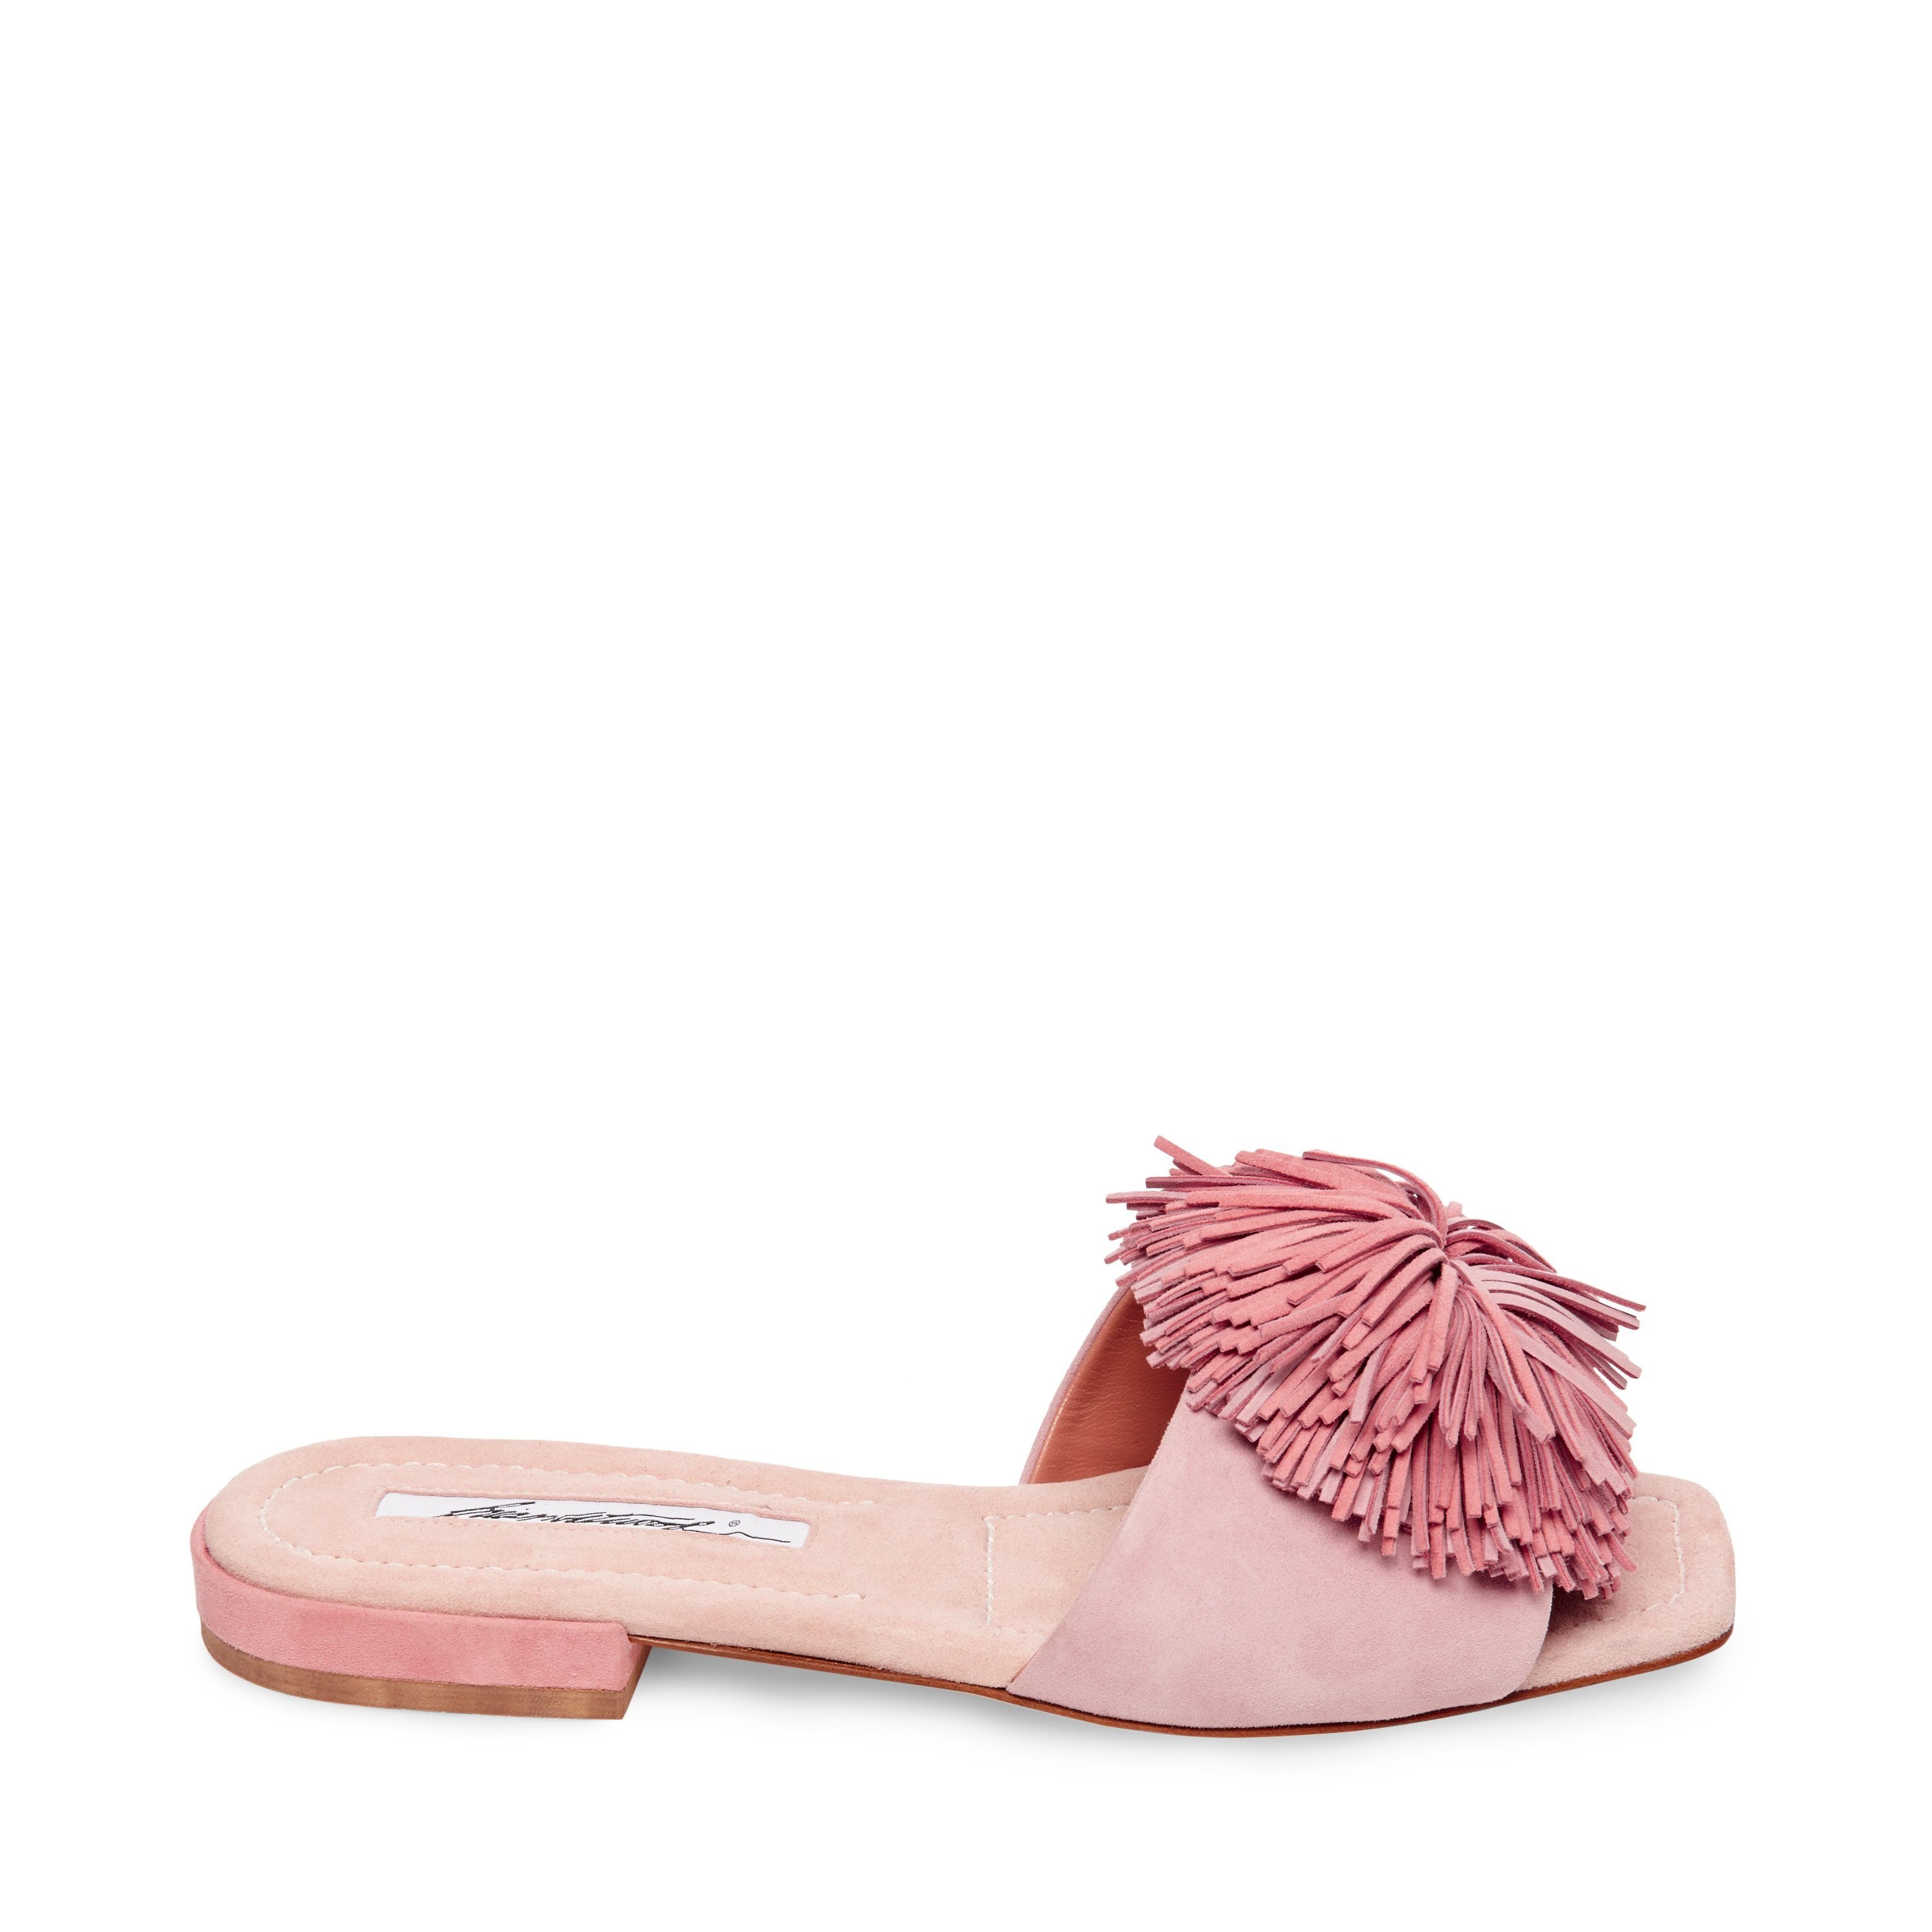 NEW PINK KIDSUEDE